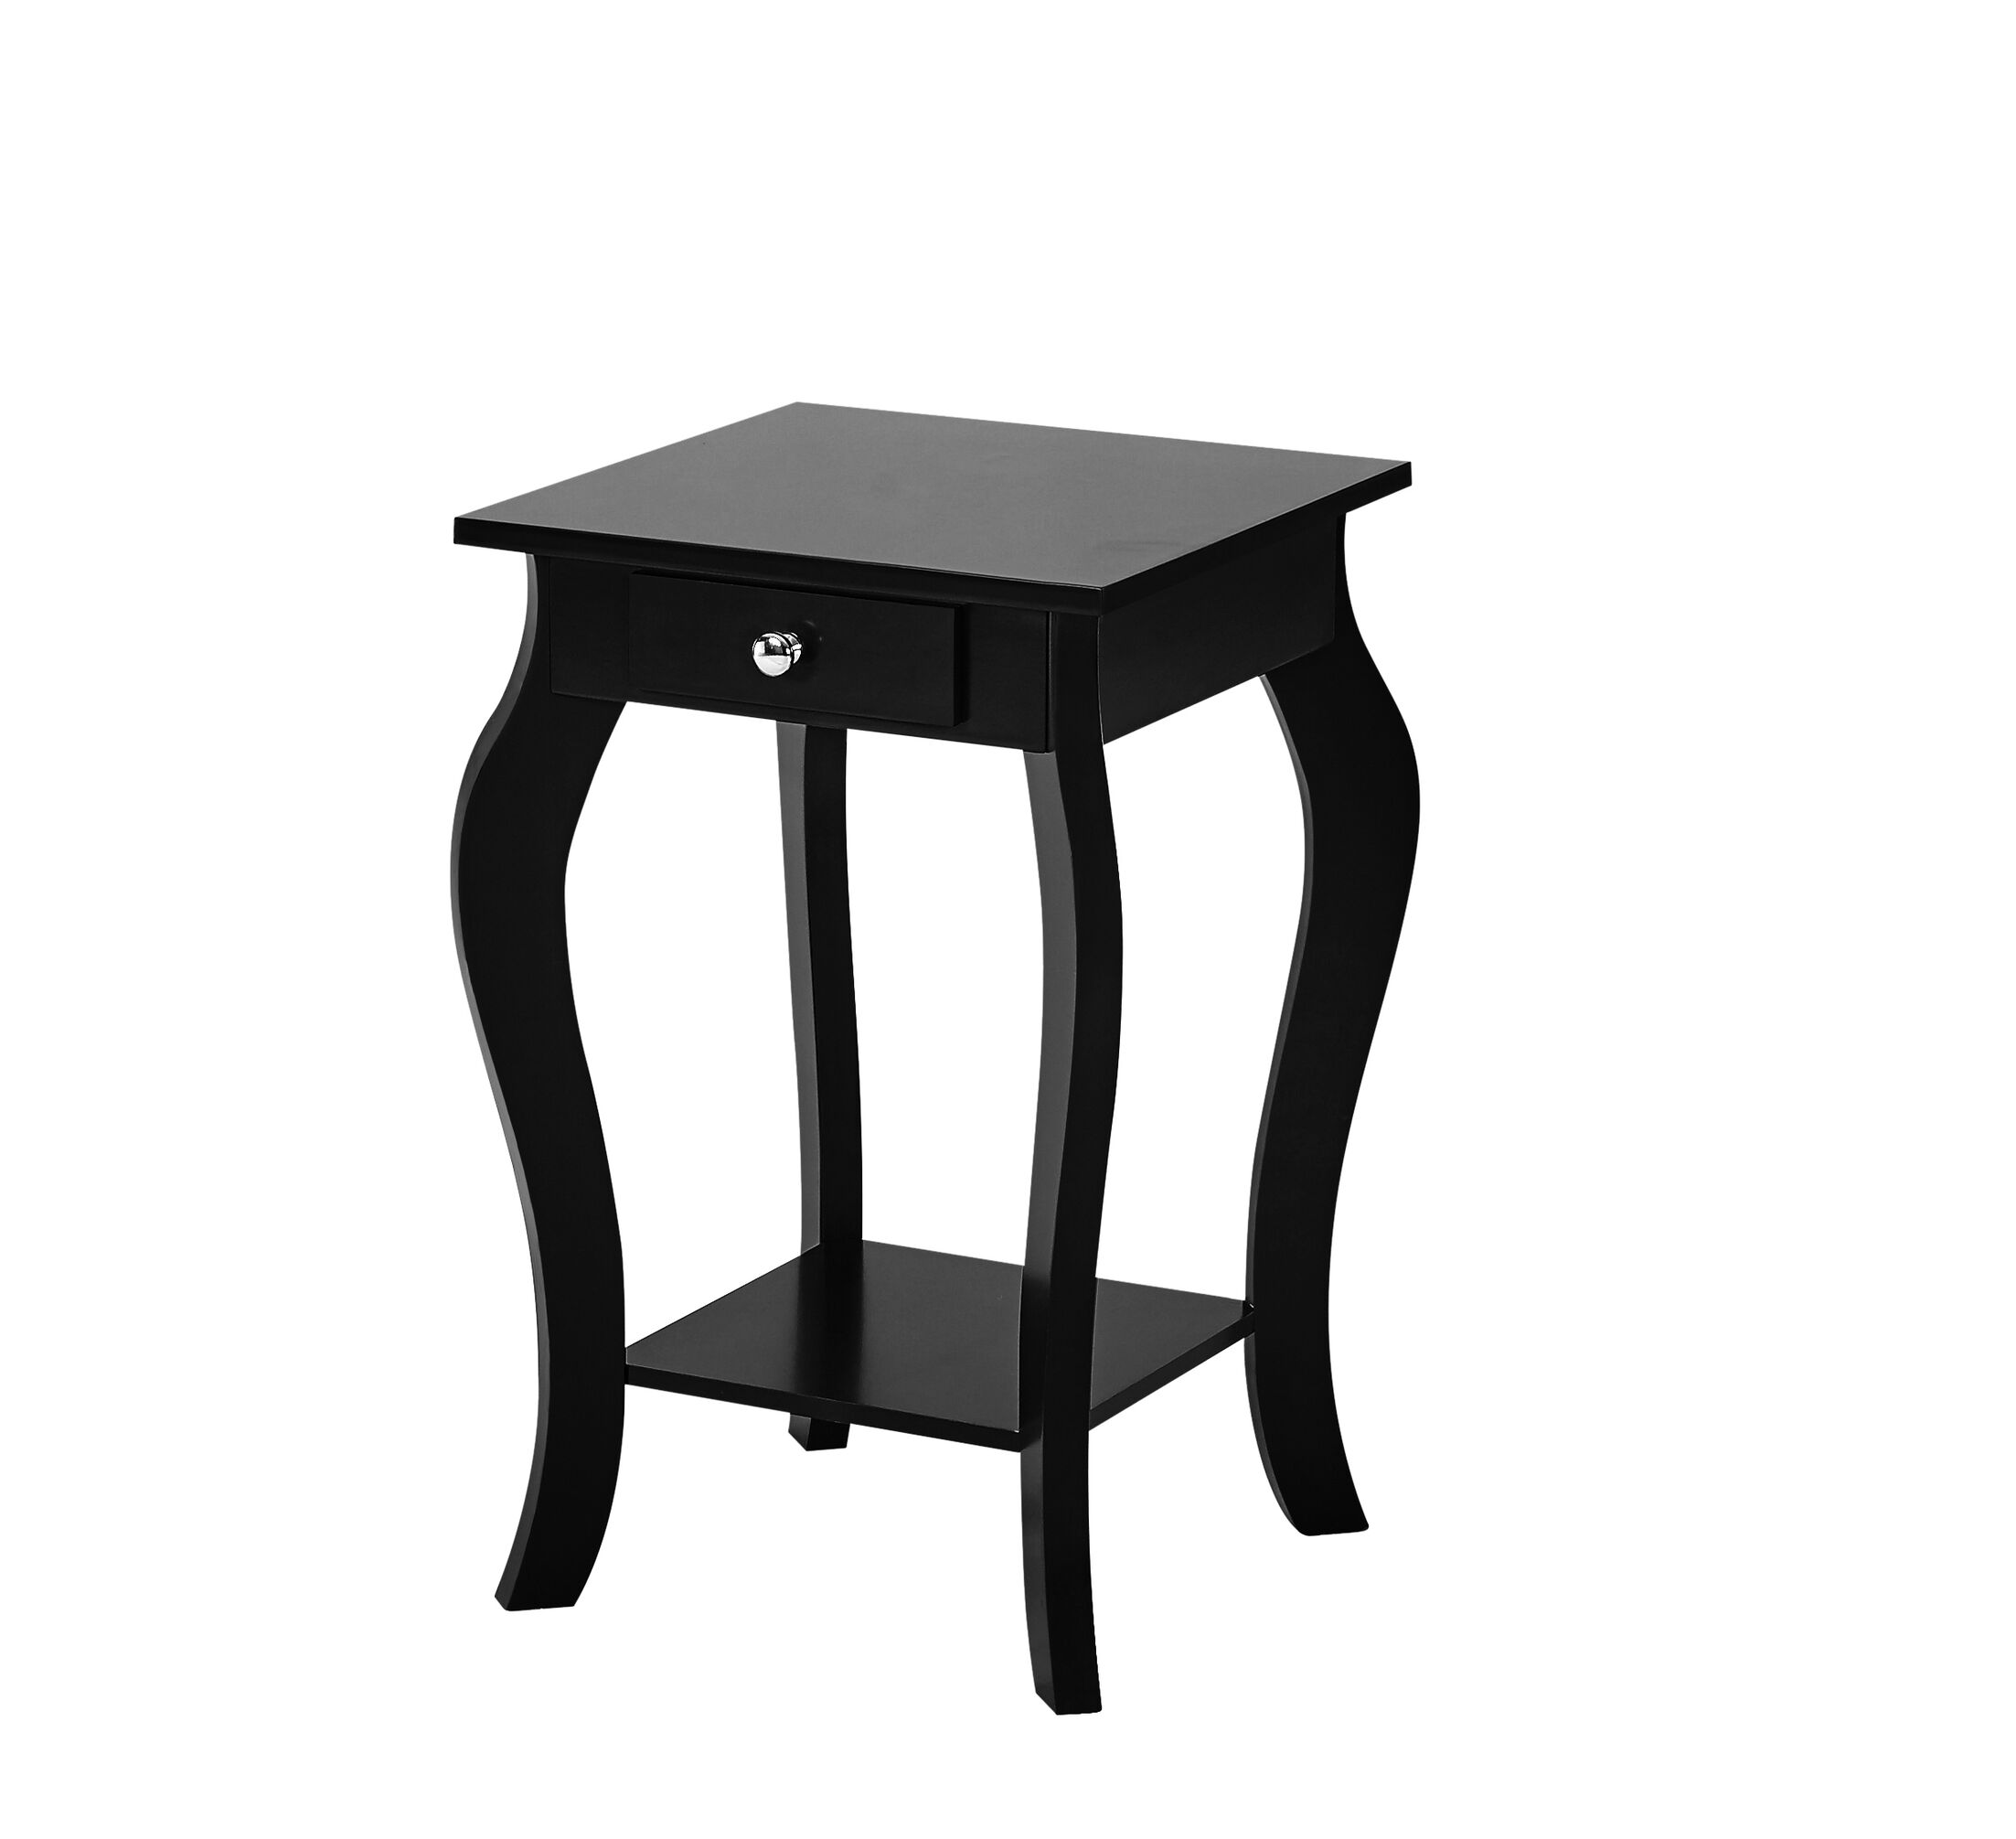 Rockhill Square End Table with Storage Color: Black